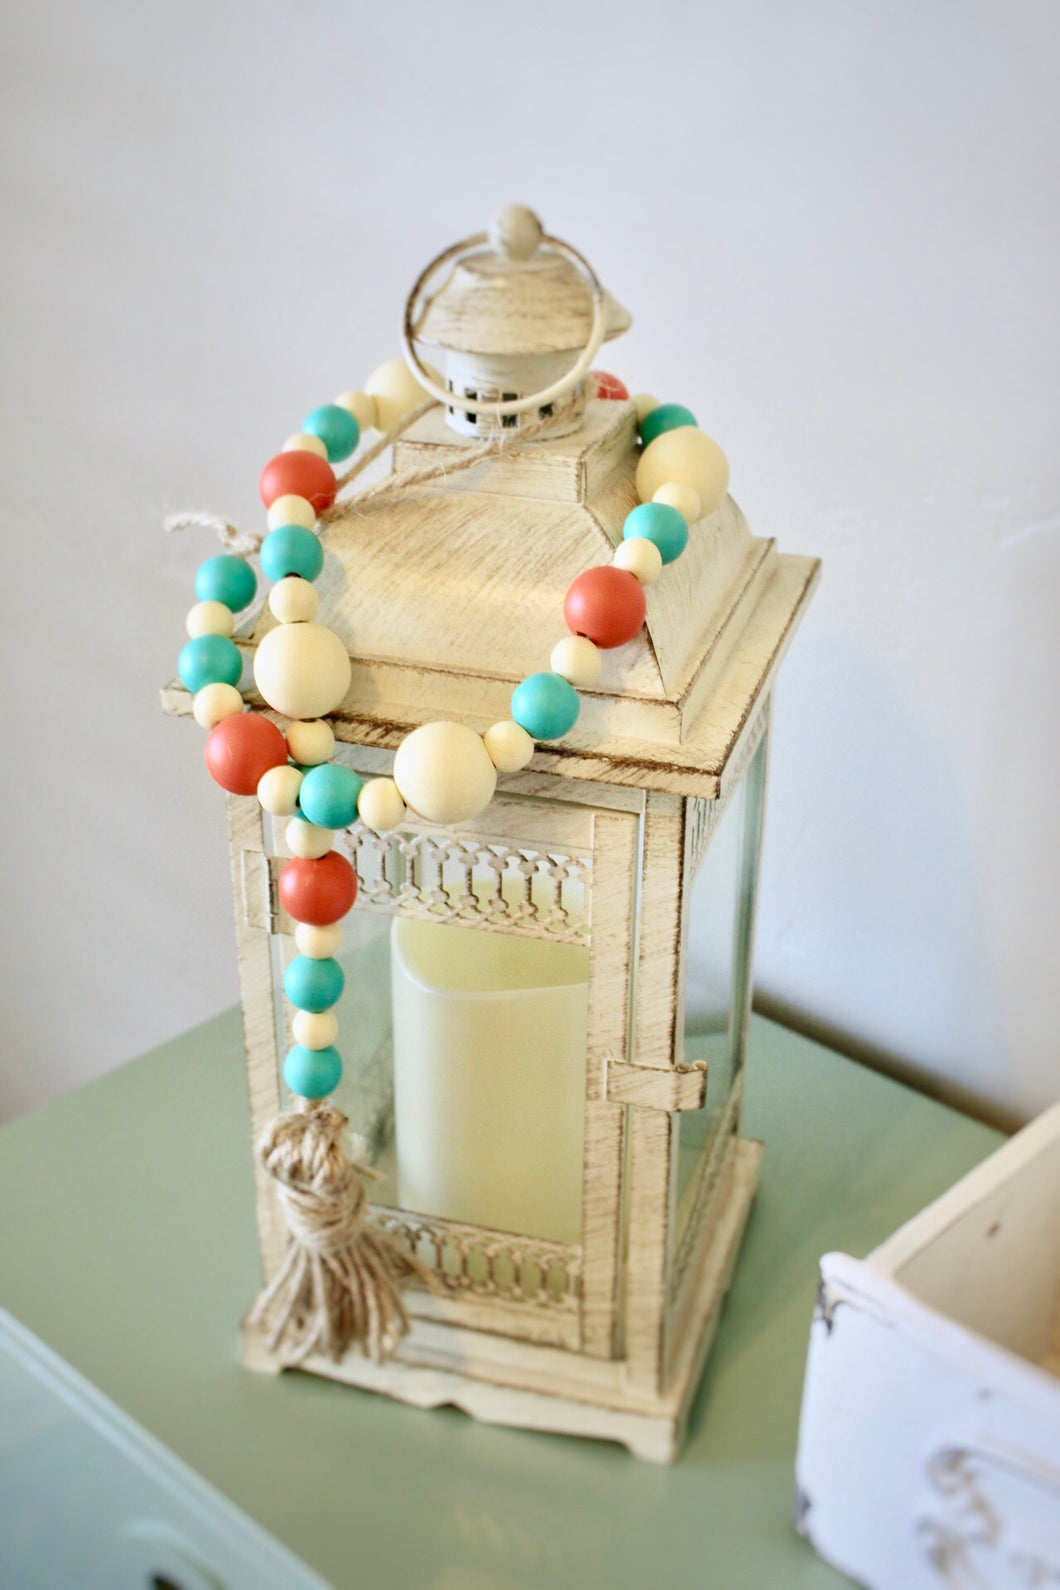 Summer Taffy Wood Bead garland with tassel and loop for hanging. Comes in a coral, cream and mint colored beads